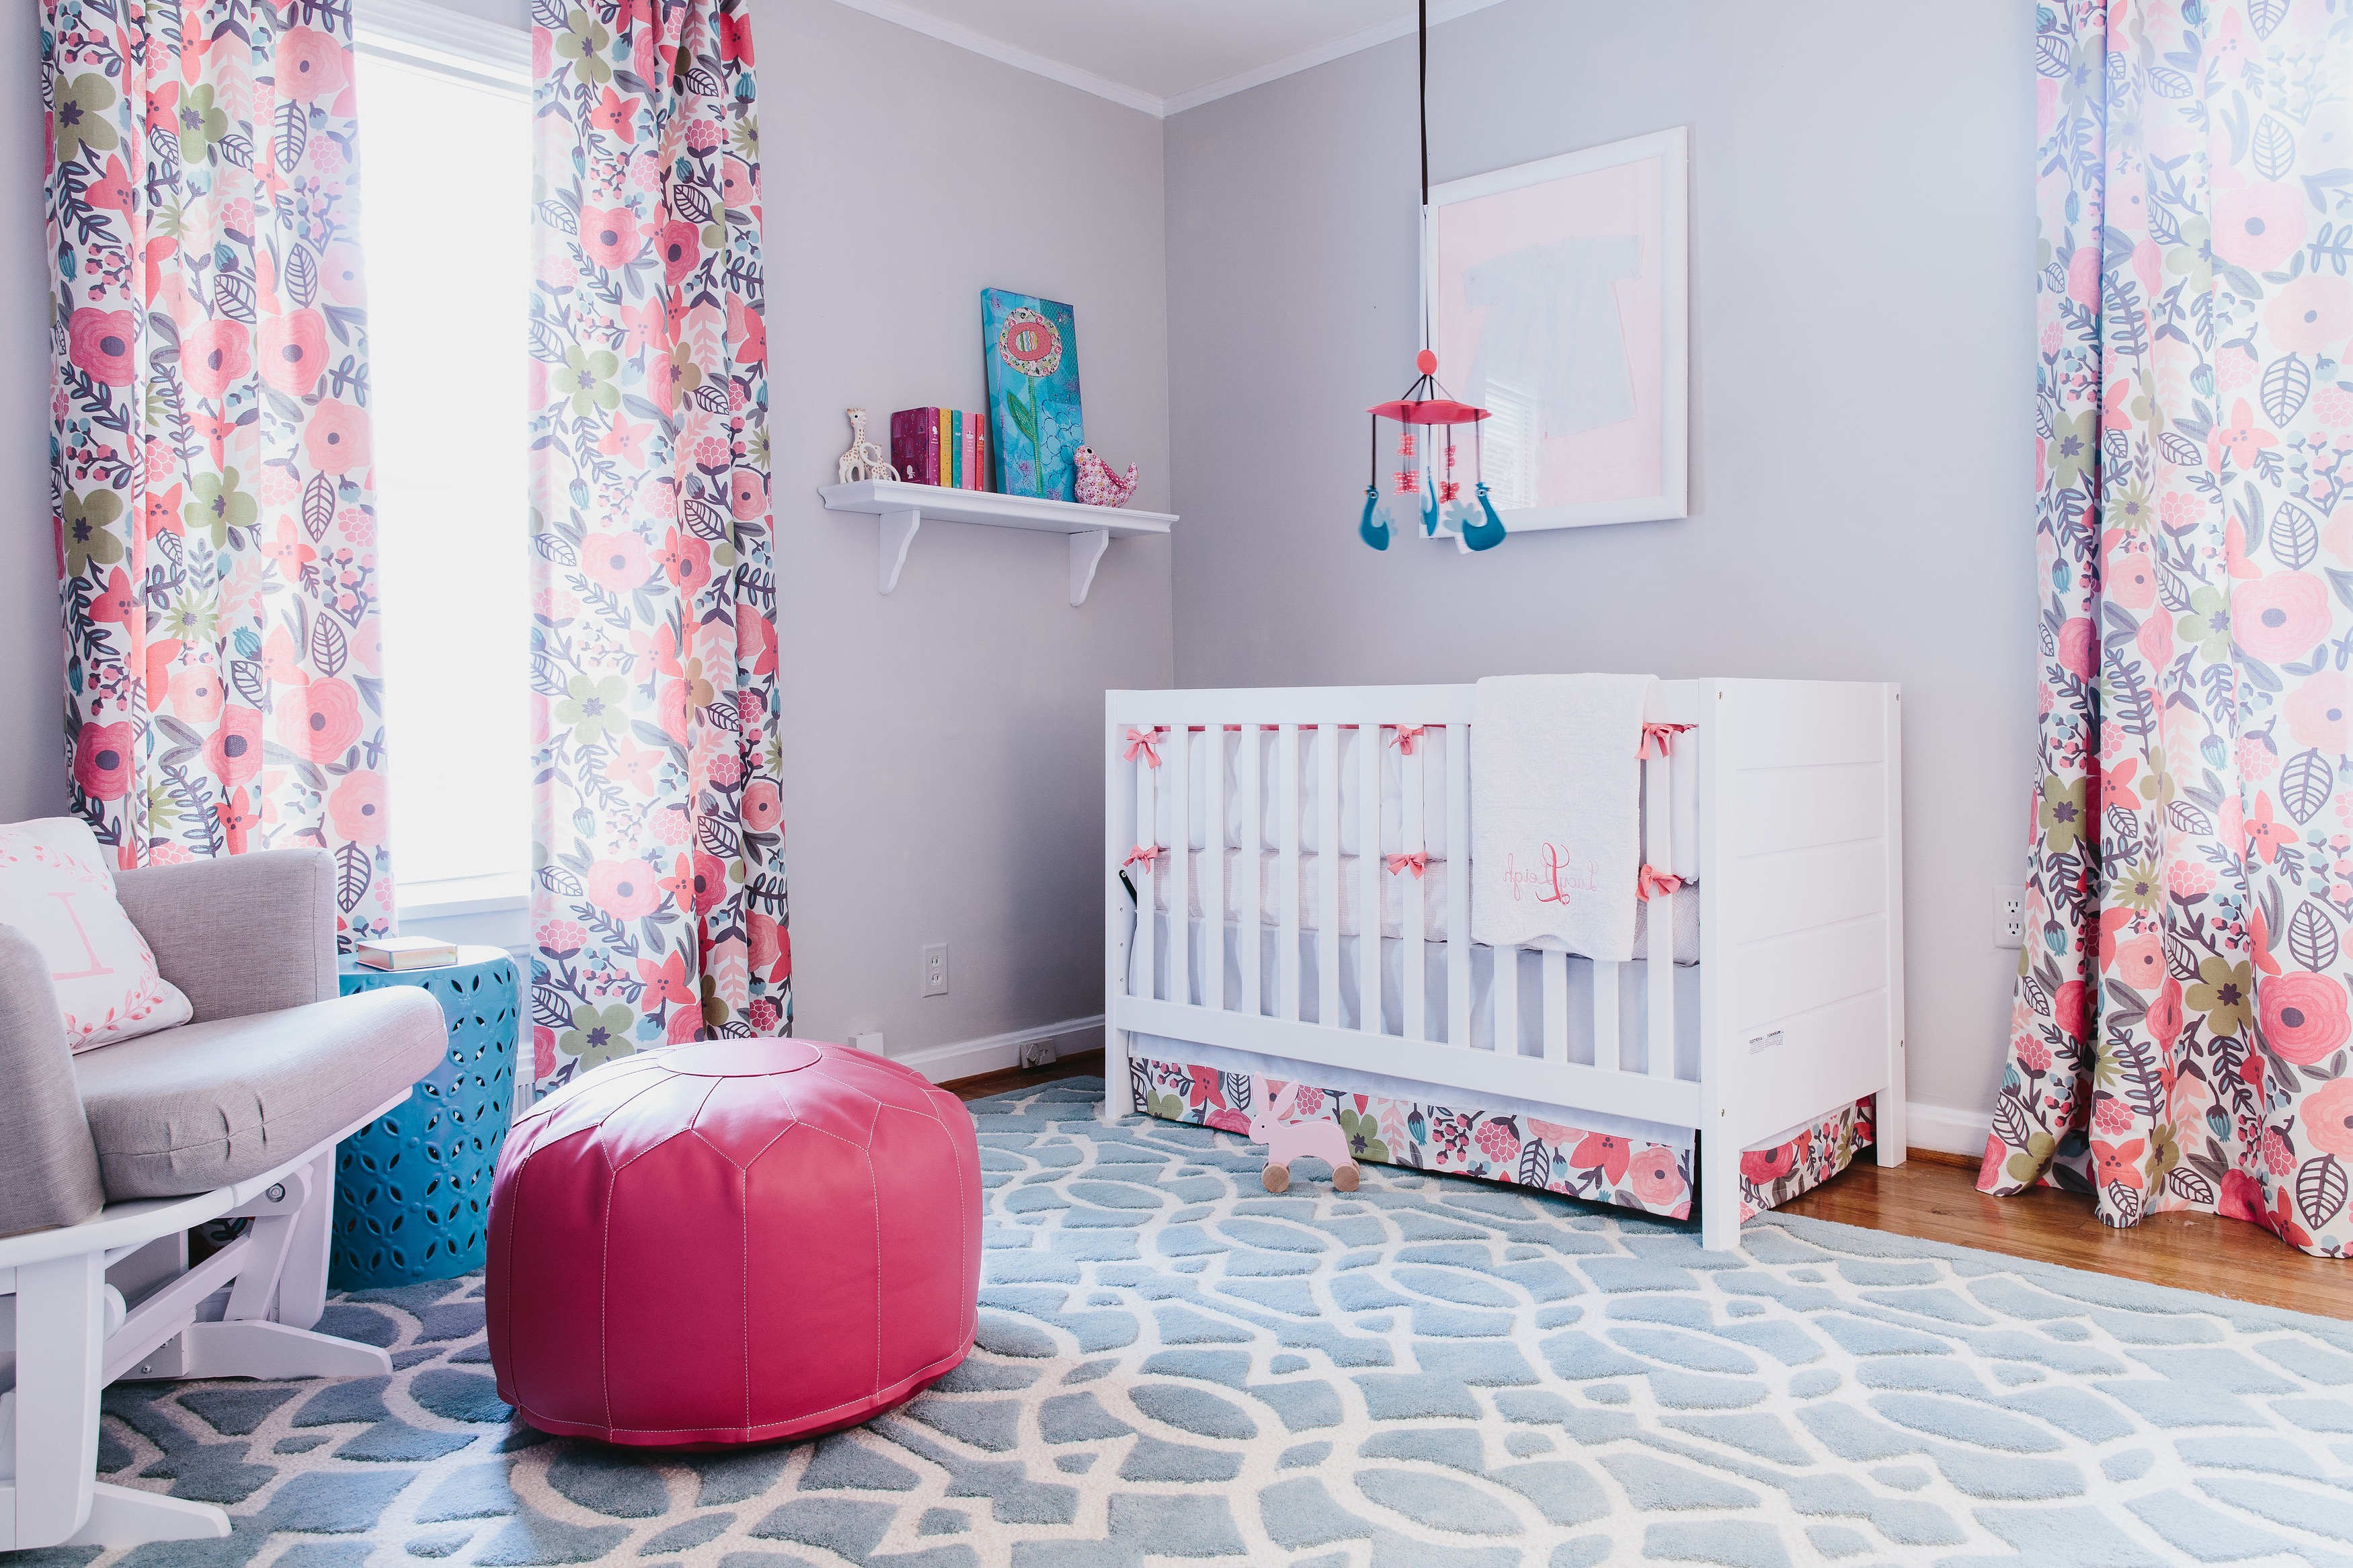 Beautiful Baby Room With Multicolored Floral Curtains (Image 2 of 33)